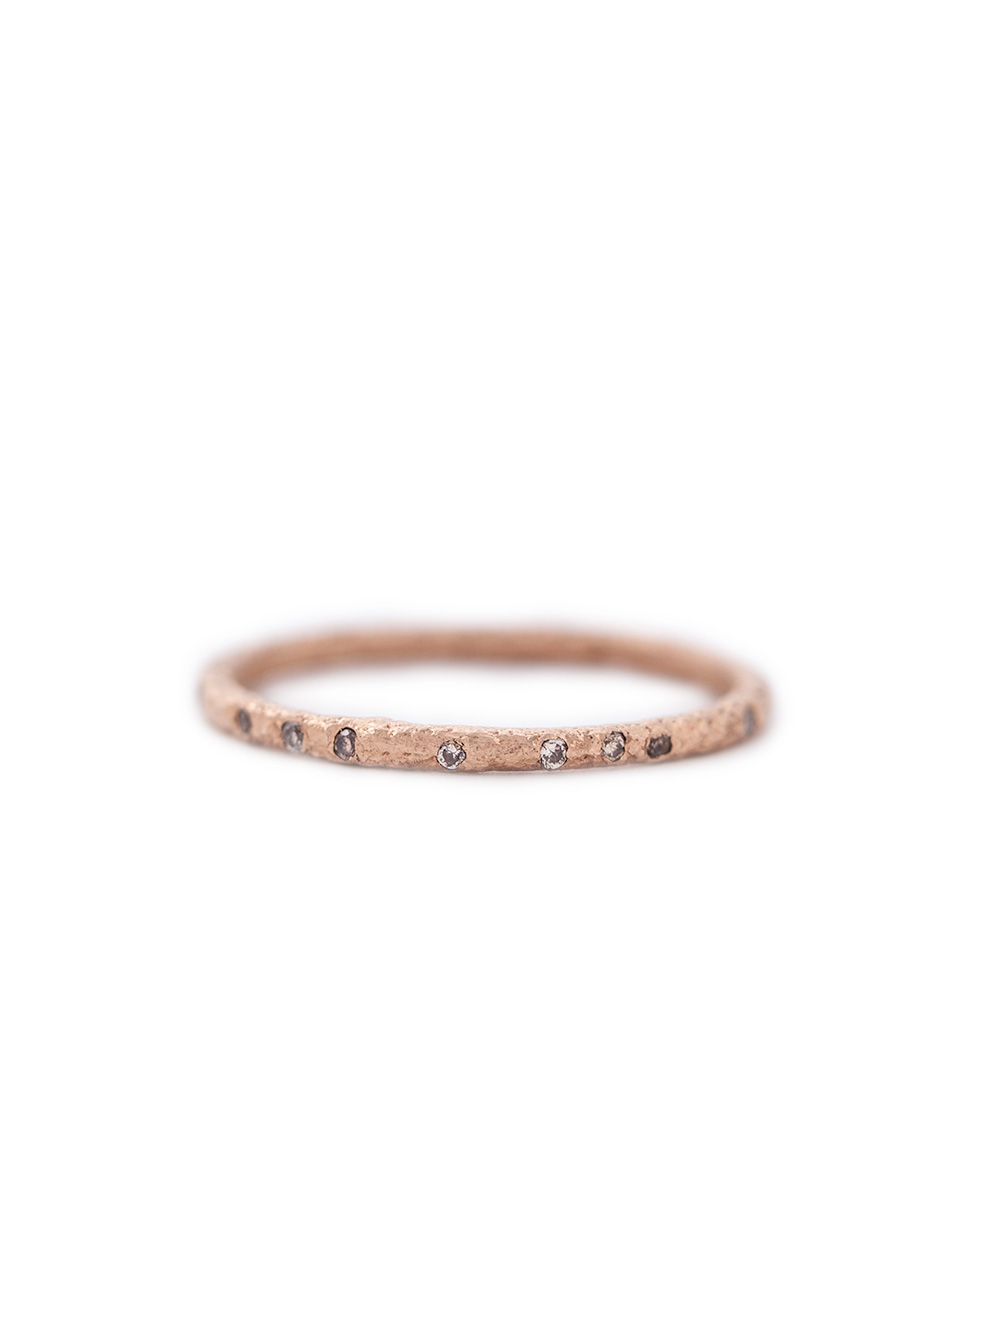 Rose gold ring with 16 champagne diamonds